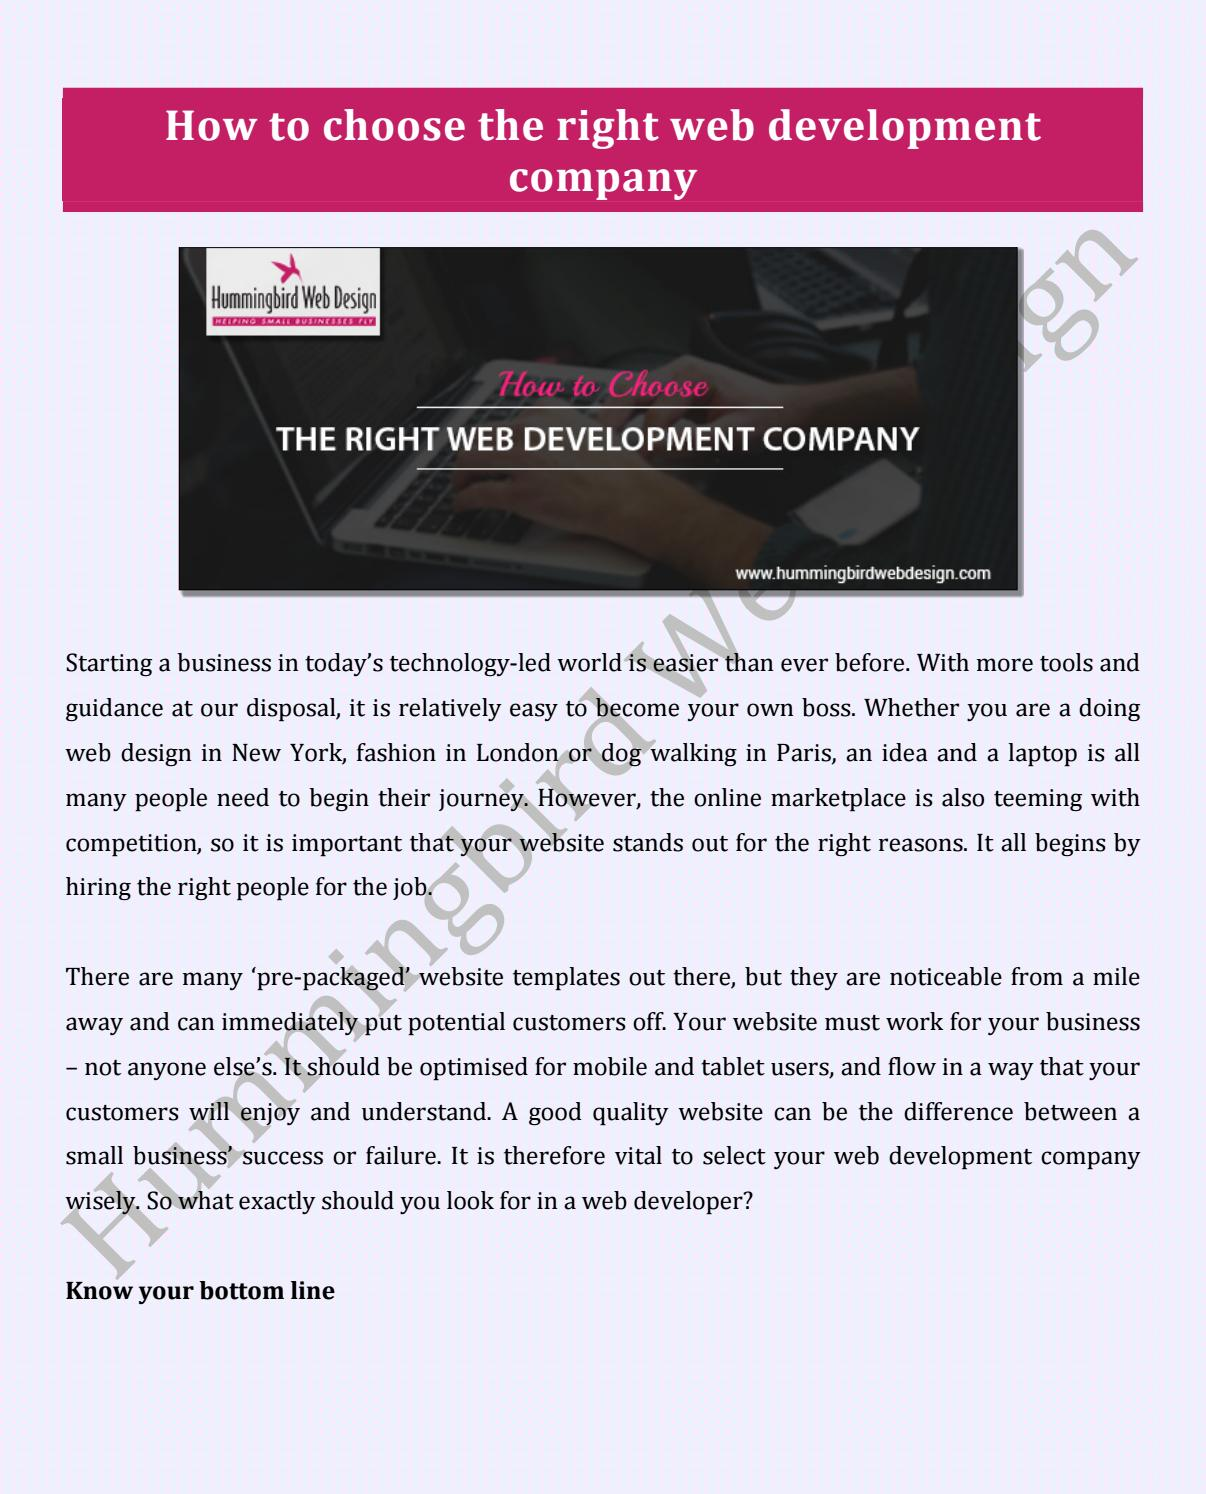 How To Choose The Right Web Development Company By Hummingbird Web